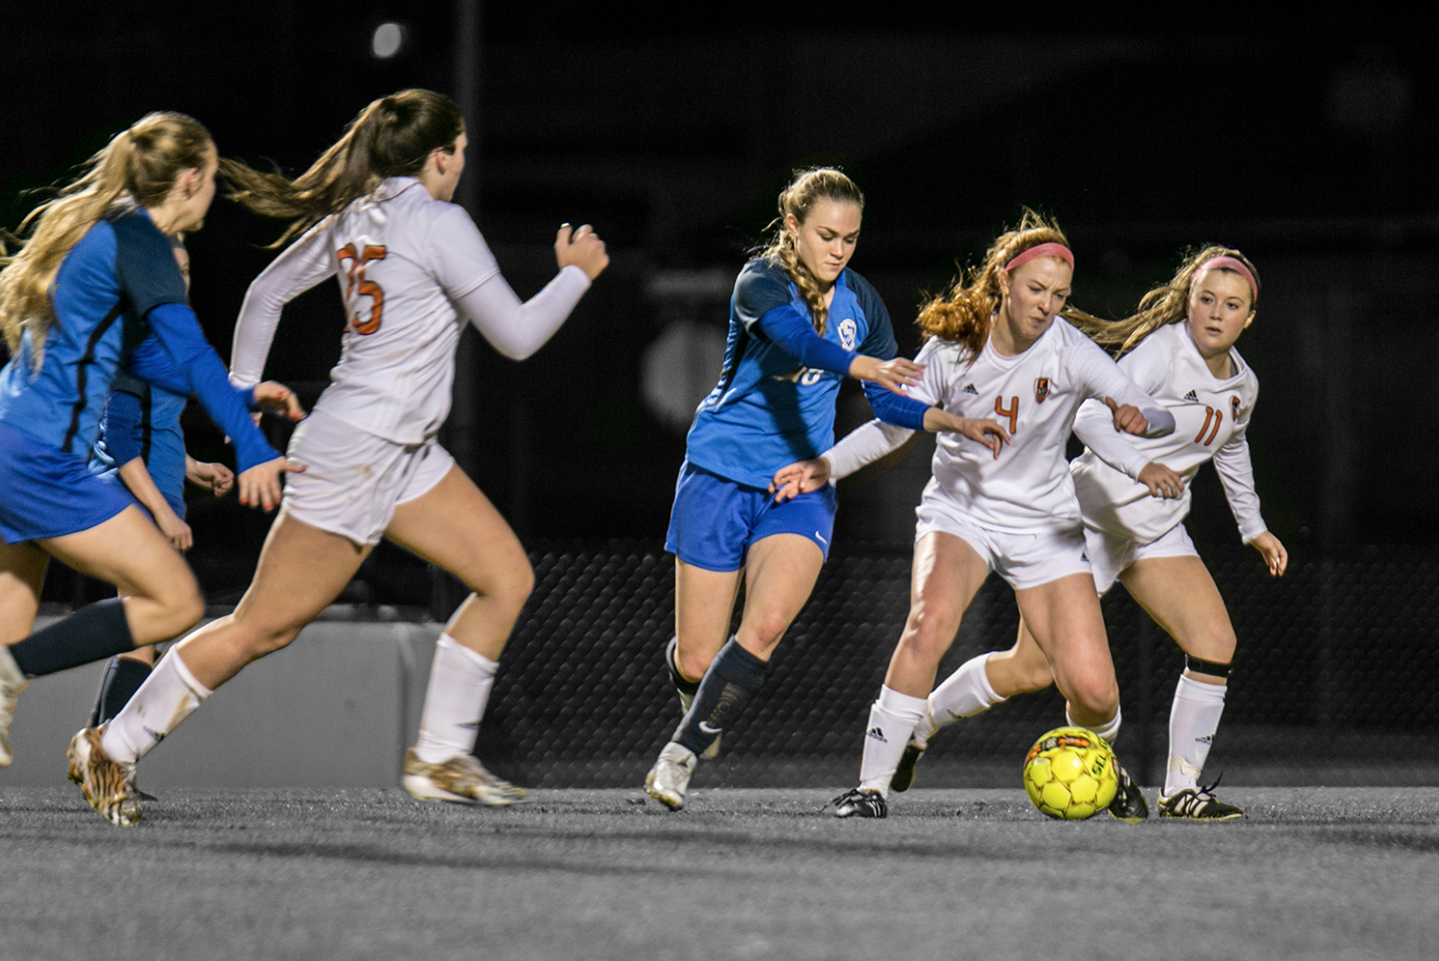 Senior Abigail Deleon (4) shields the ball from a Sulphur Springs defender with support from former senior Jillian Ross and senior Sarah Jane Paddock. file photo